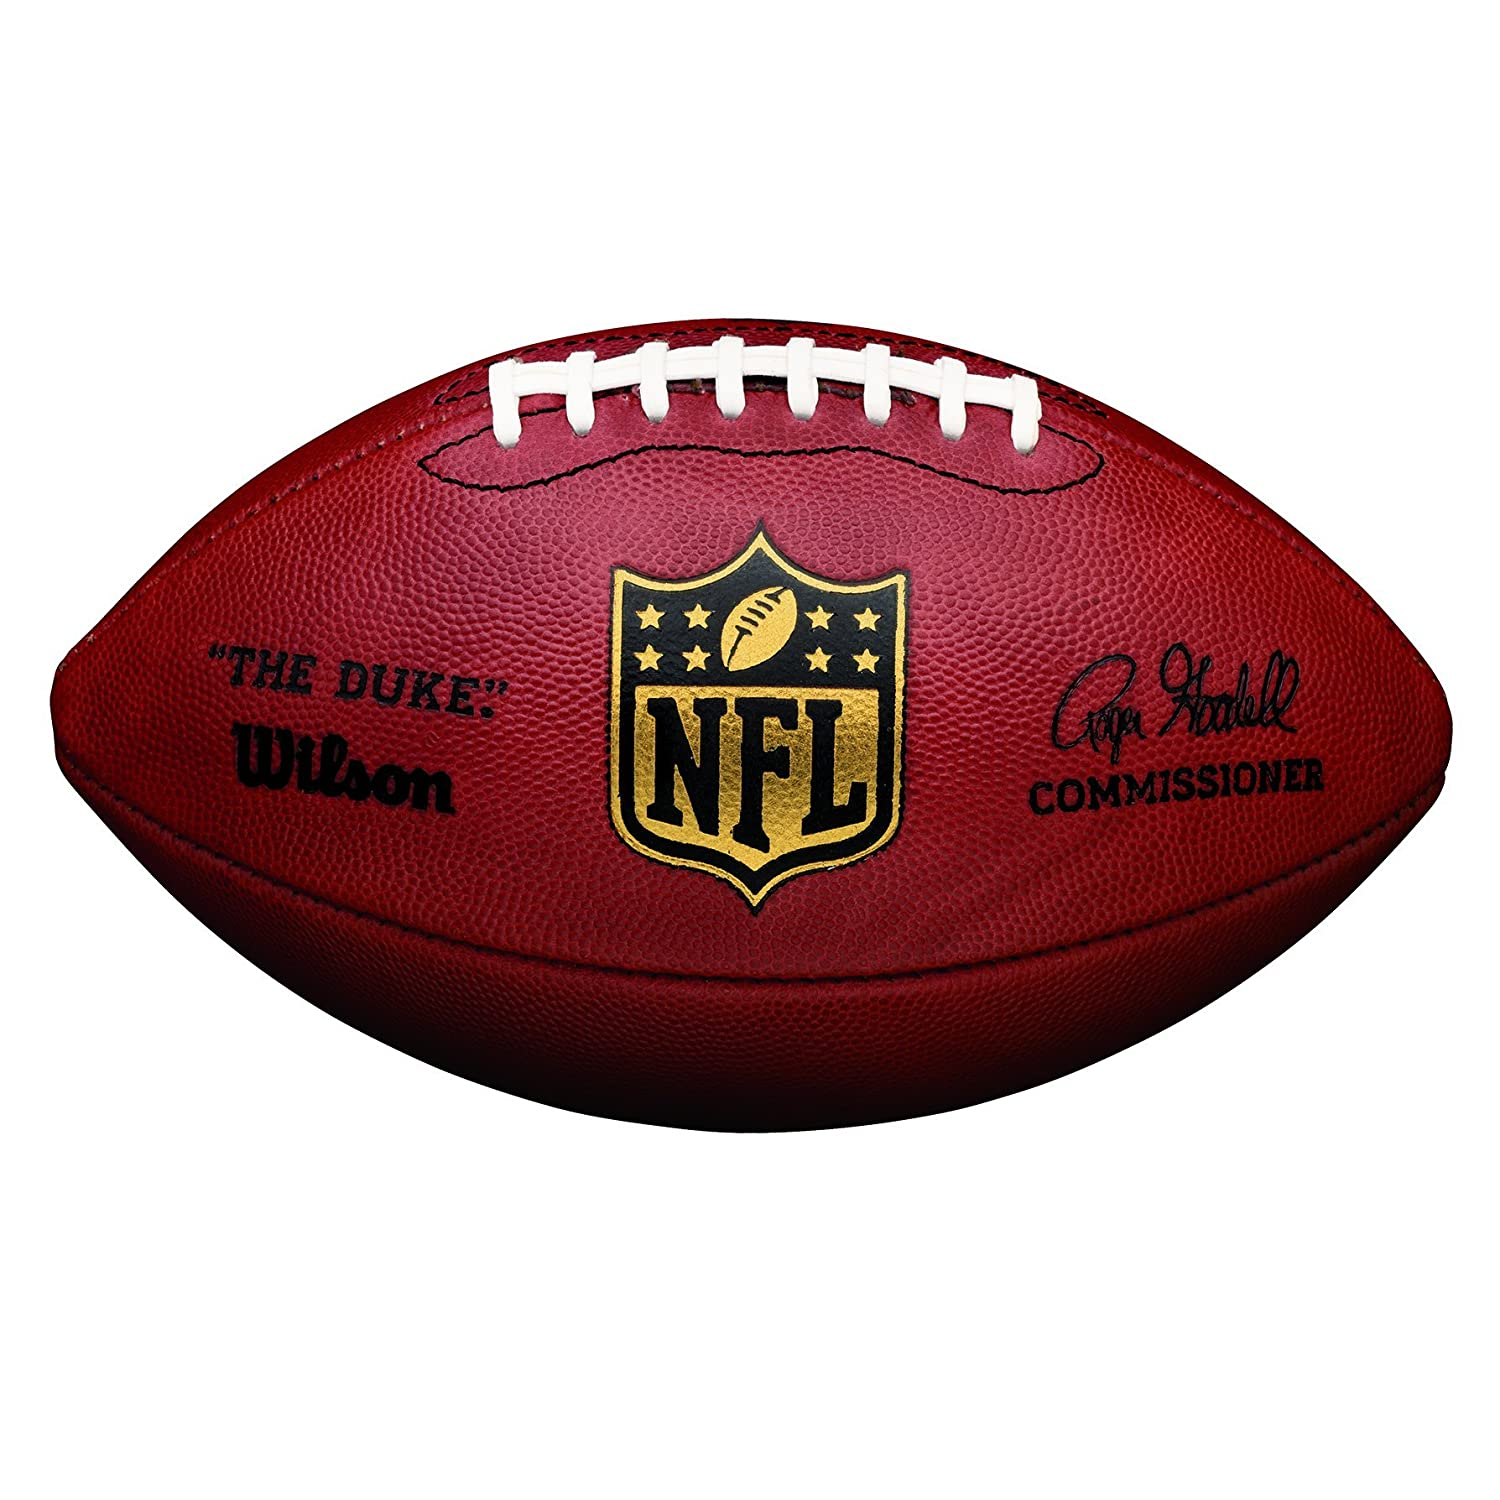 Amazon Com Wilson The Duke Official Nfl Game Football Sports Outdoors